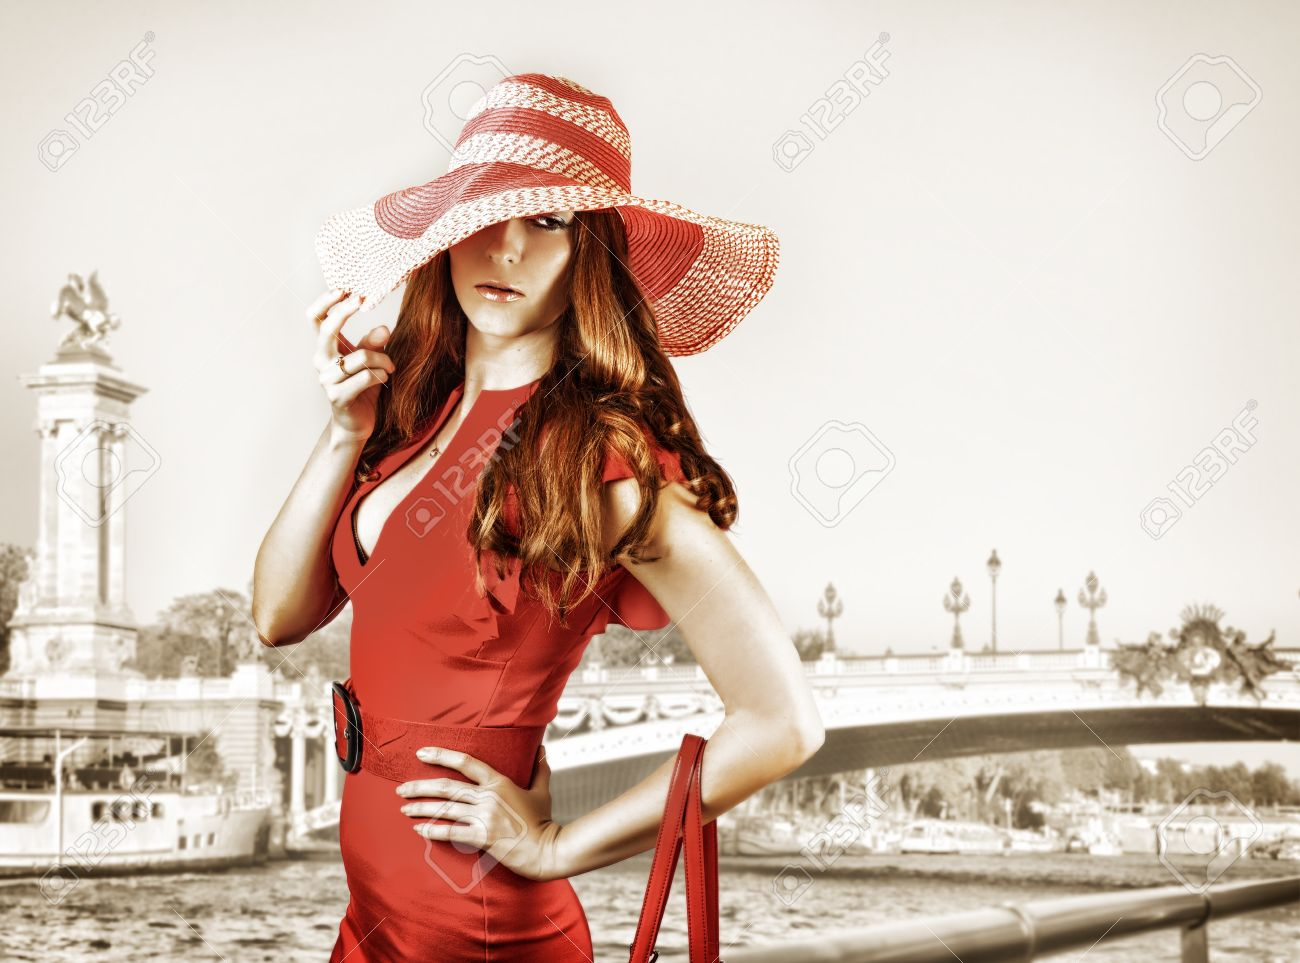 Young sexy fashionable woman wearing red hat and dress Stock Photo - 20961658